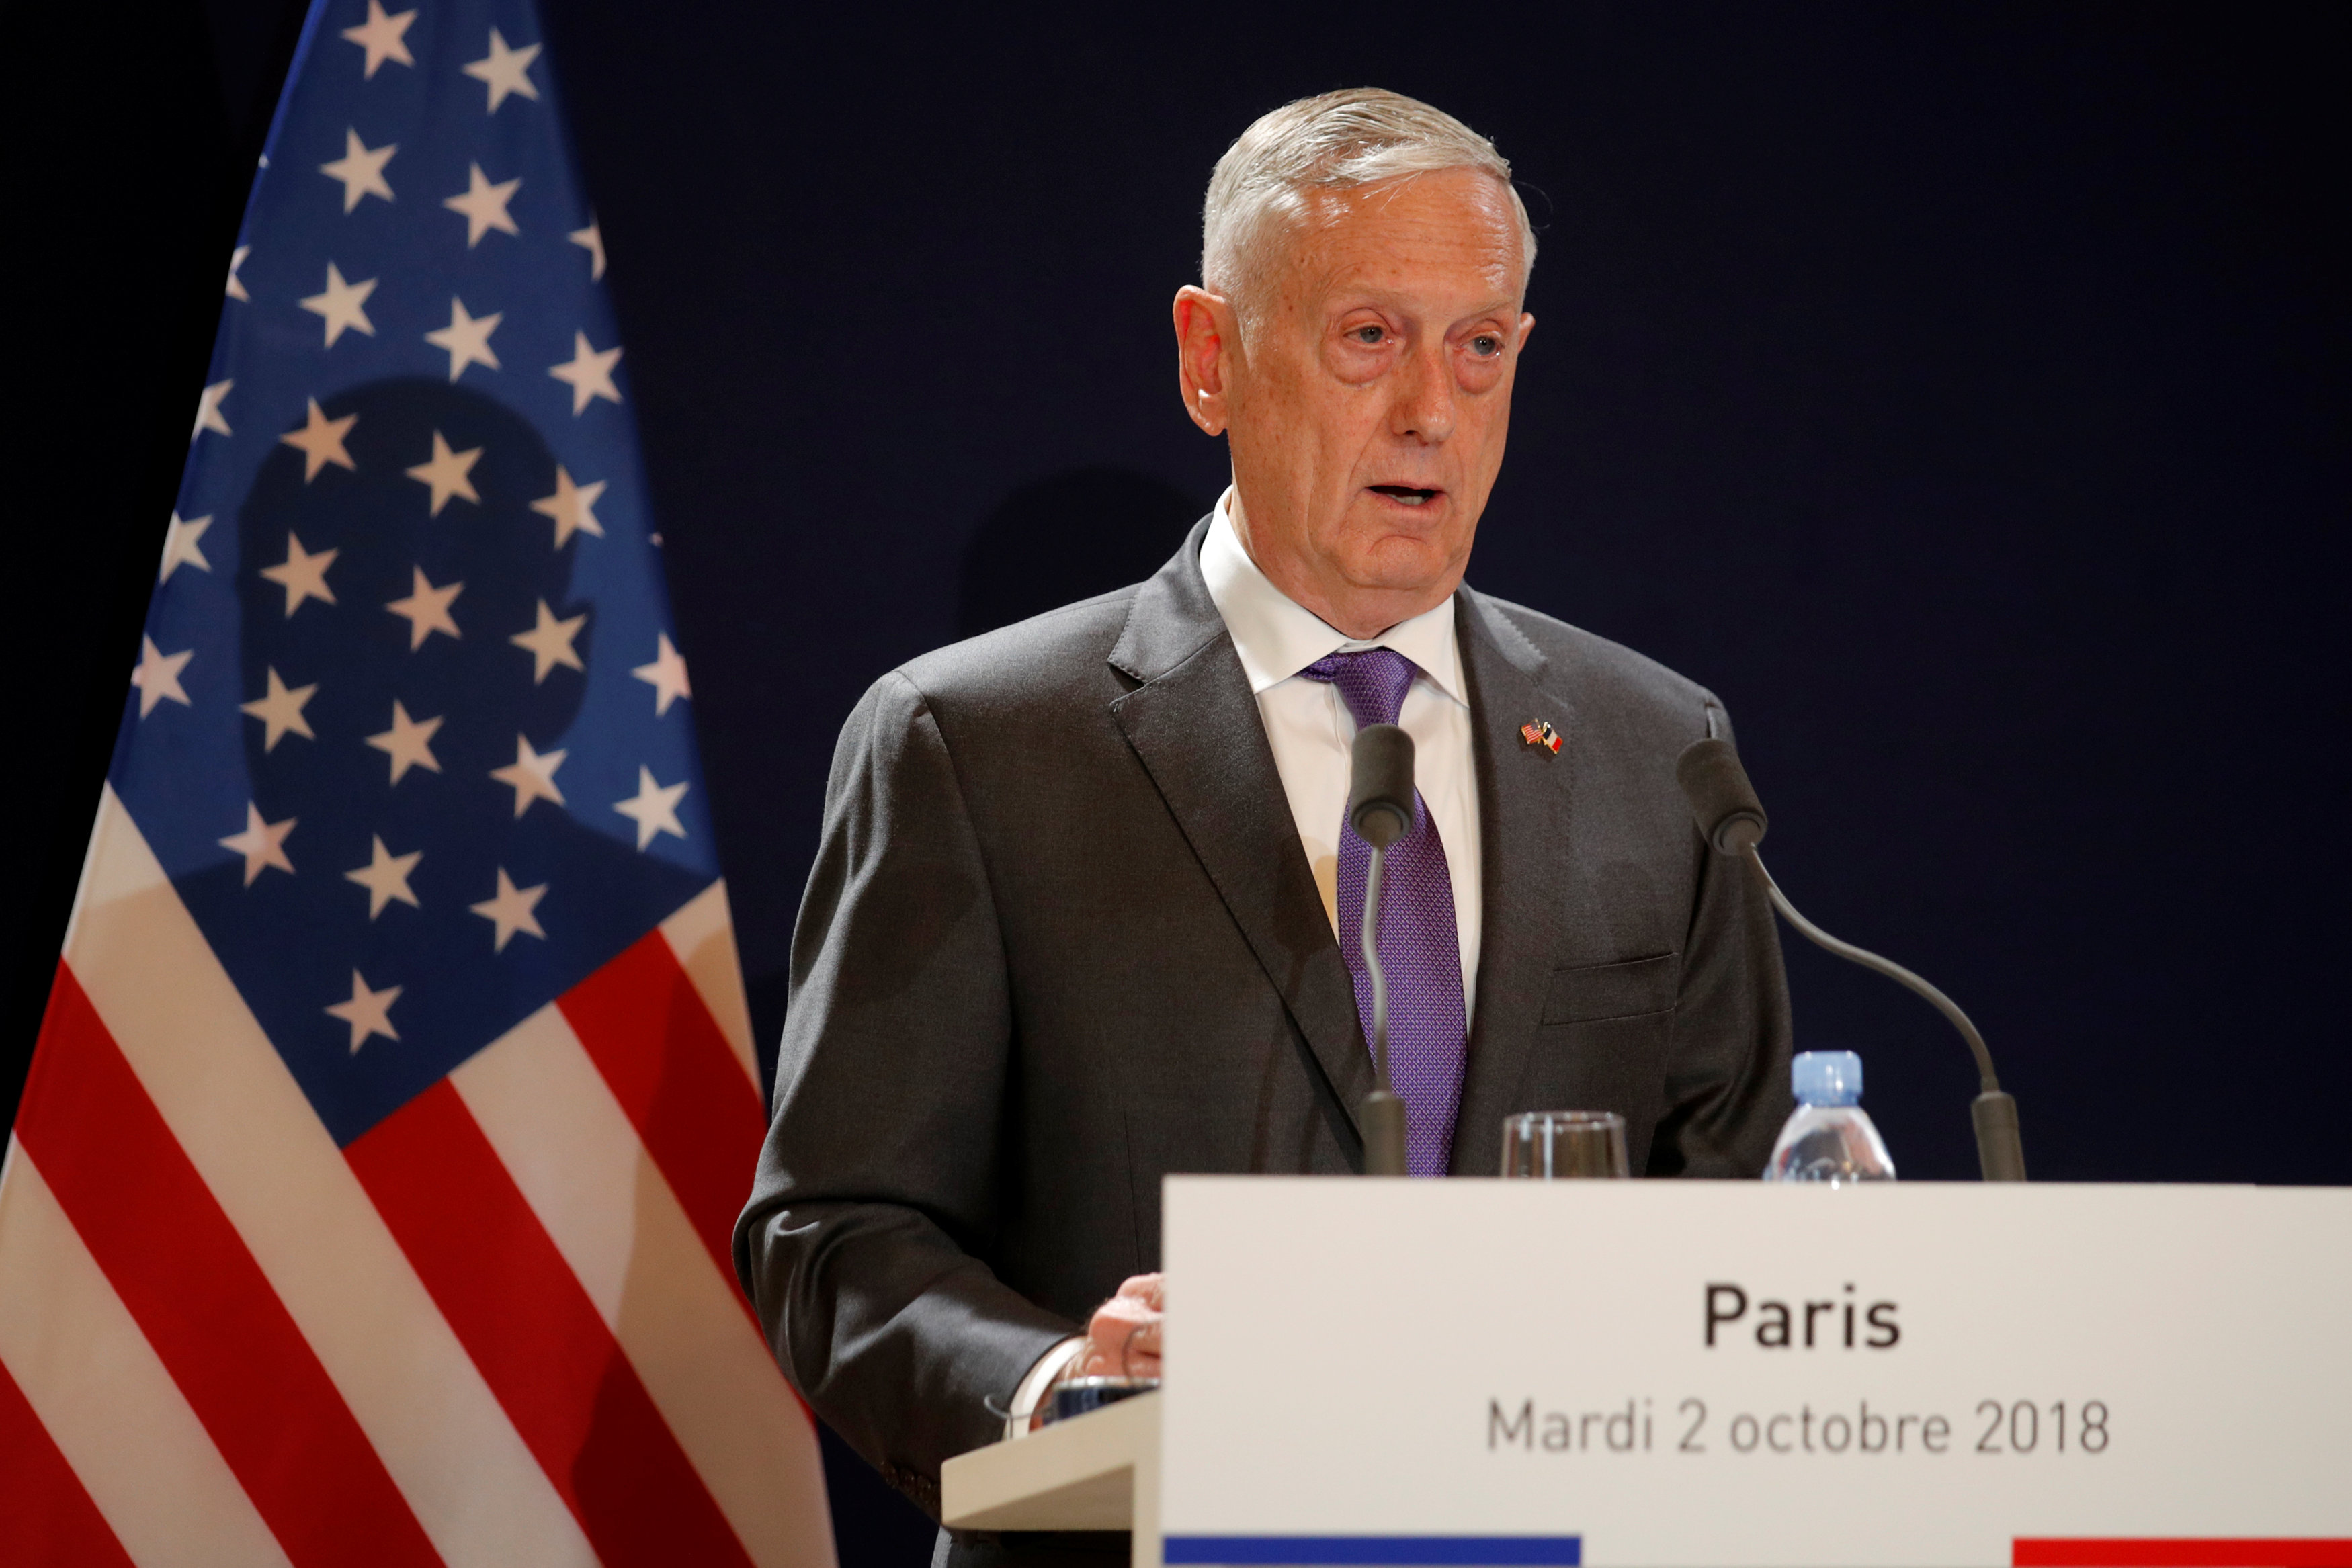 U.S. Secretary of Defense James Mattis attends a news conference with French Minister of the Armed Forces Florence Parly (not pictured) at the Defence Ministry in Paris, France, October 2, 2018. REUTERS/Philippe Wojazer